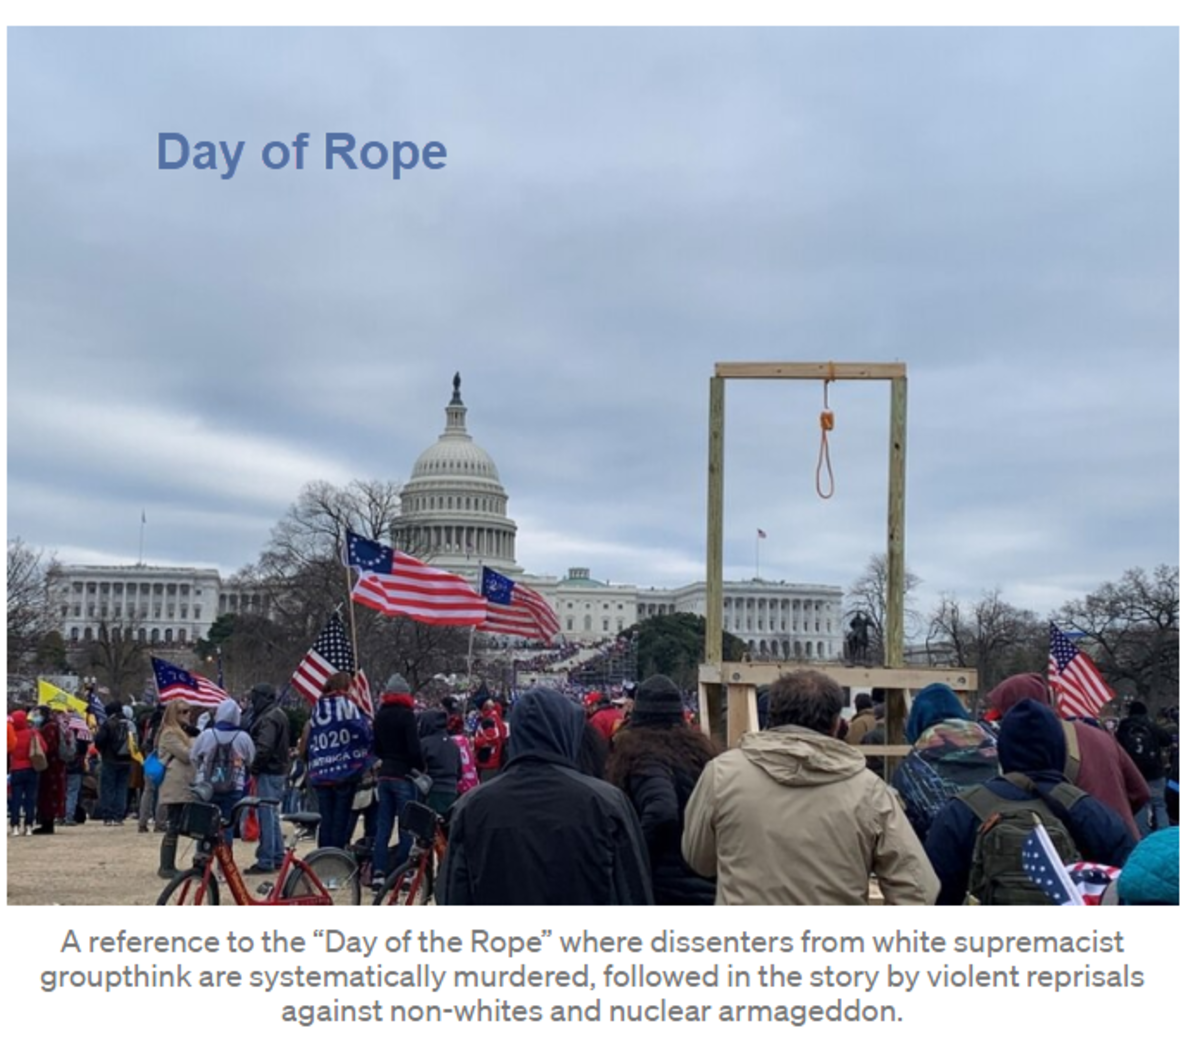 Day of Rope